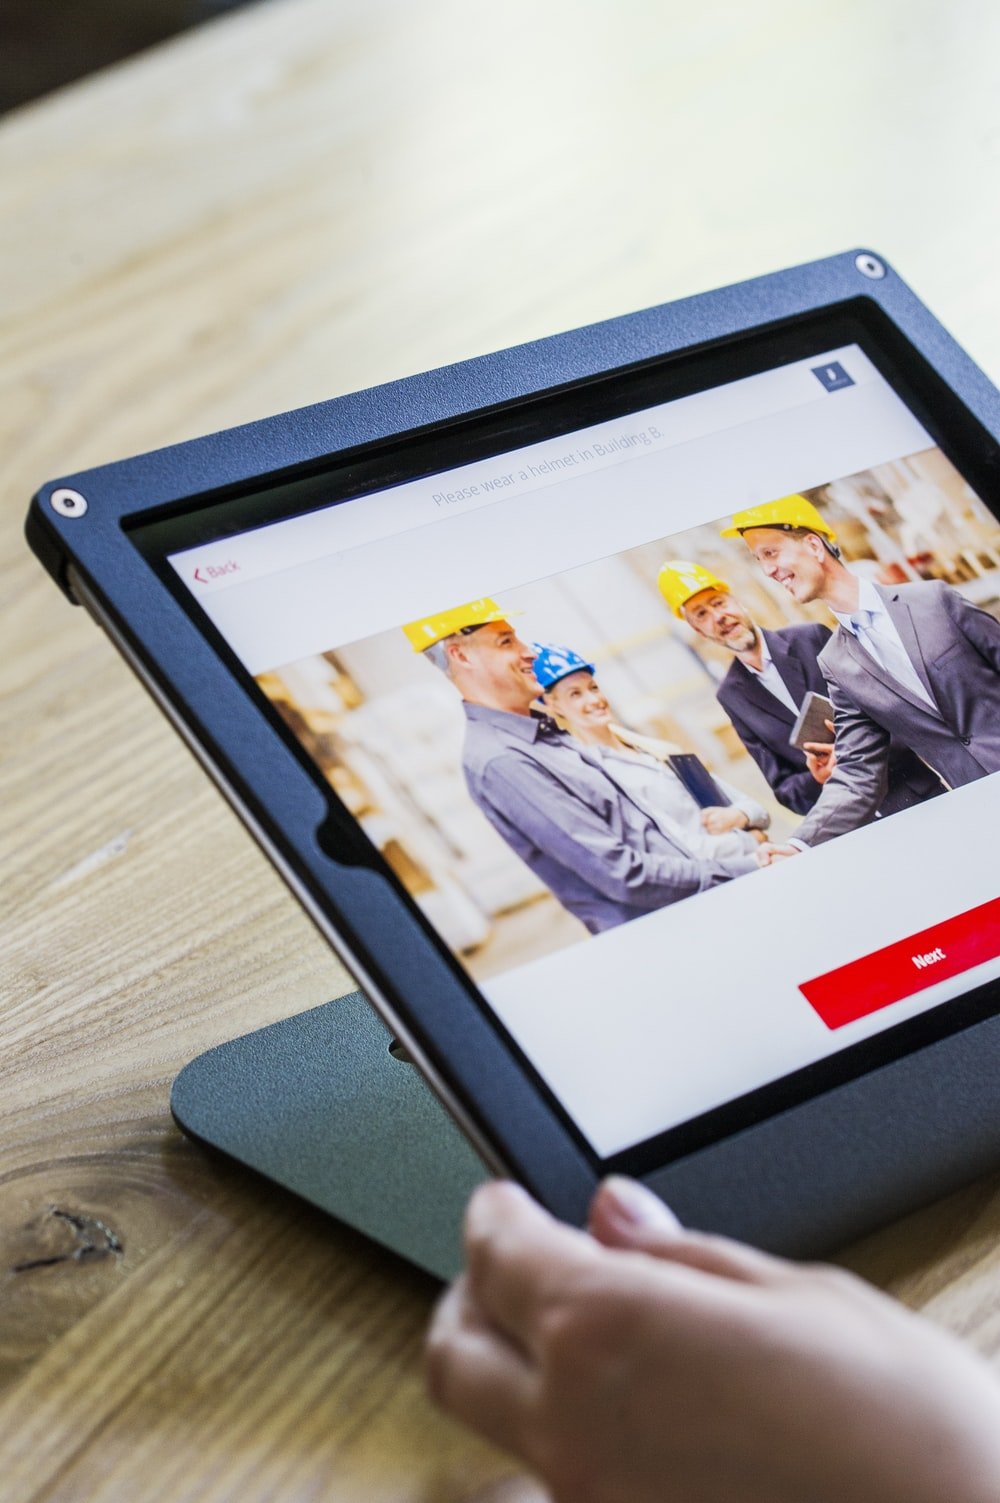 iPad with four business persons shaking hands display